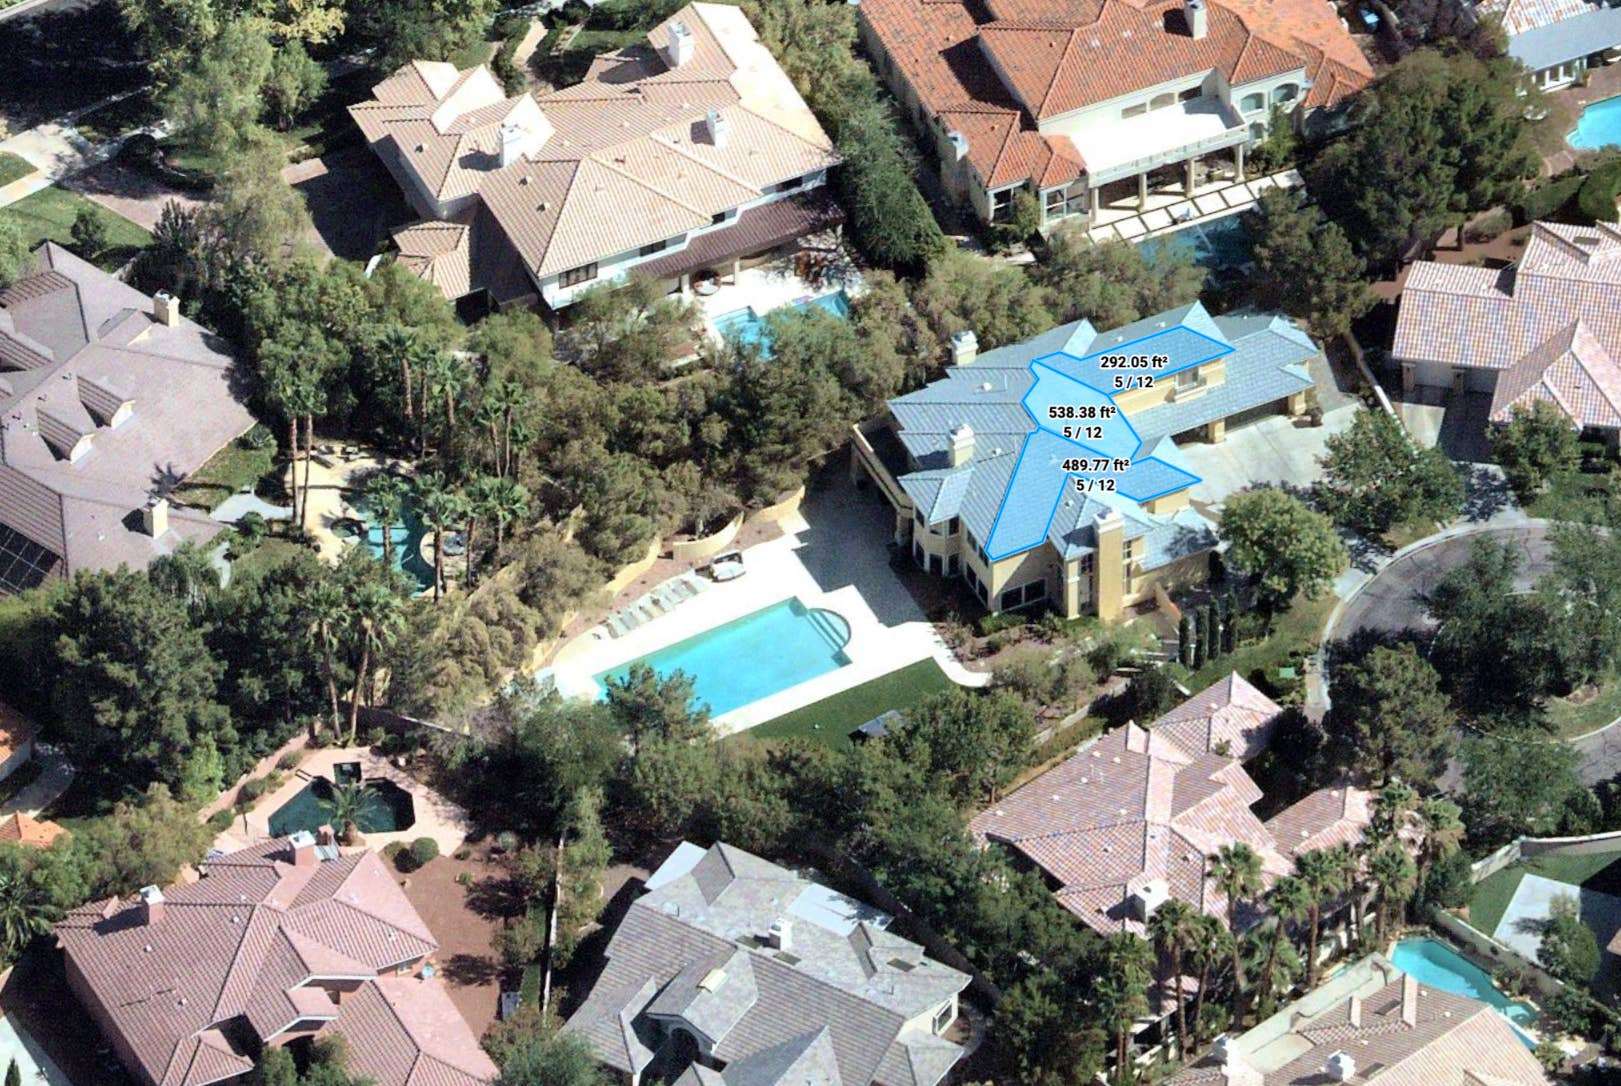 Oblique aerial imagery of residential roof measurements - Las Vegas, NV - 5 July 2018